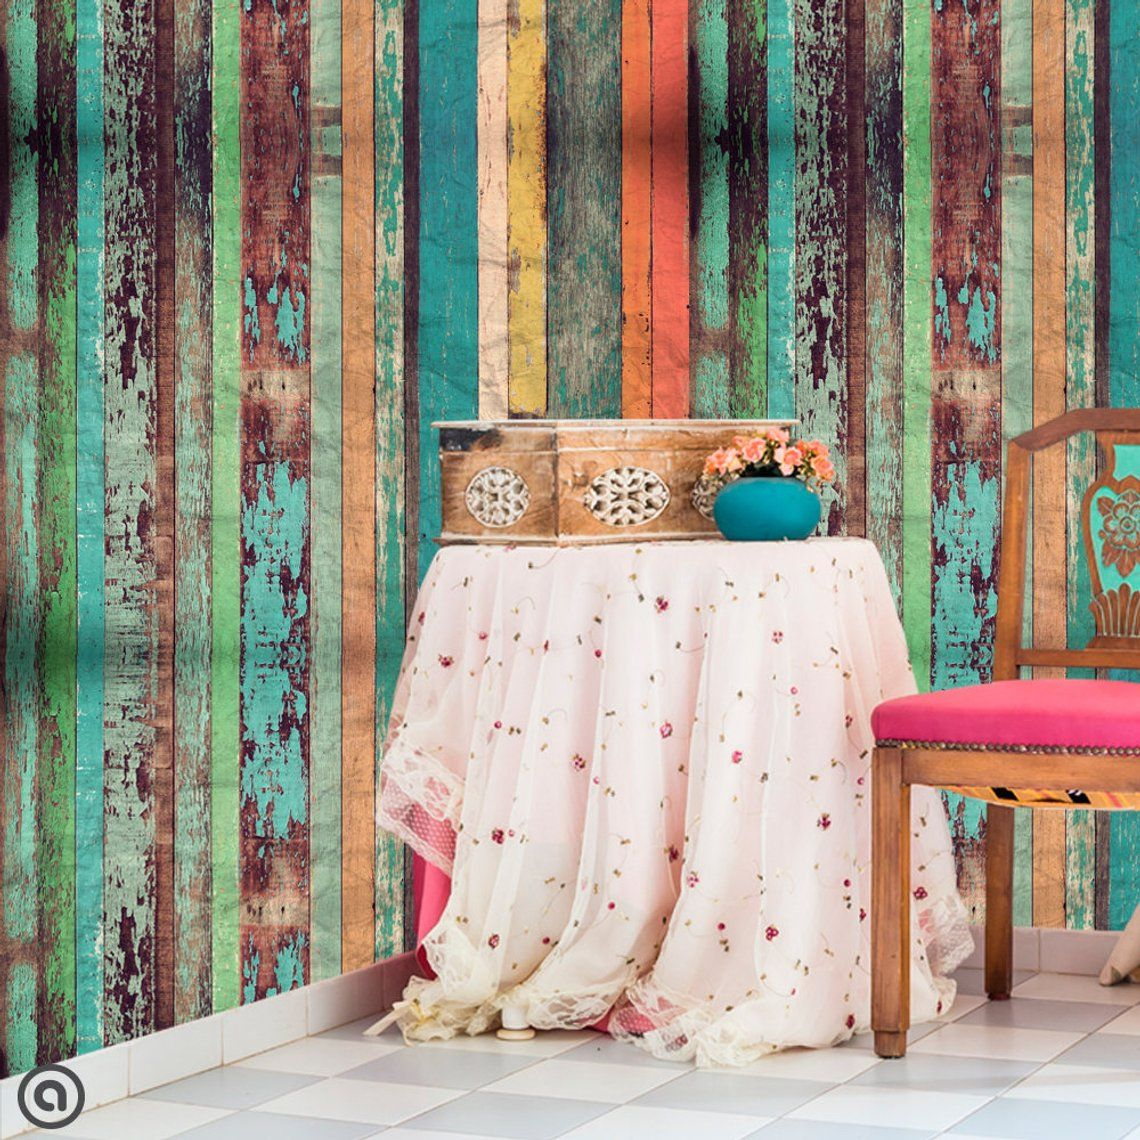 Peel and Stick Wallpaper BOAT HOUSE Removable Rustic Self